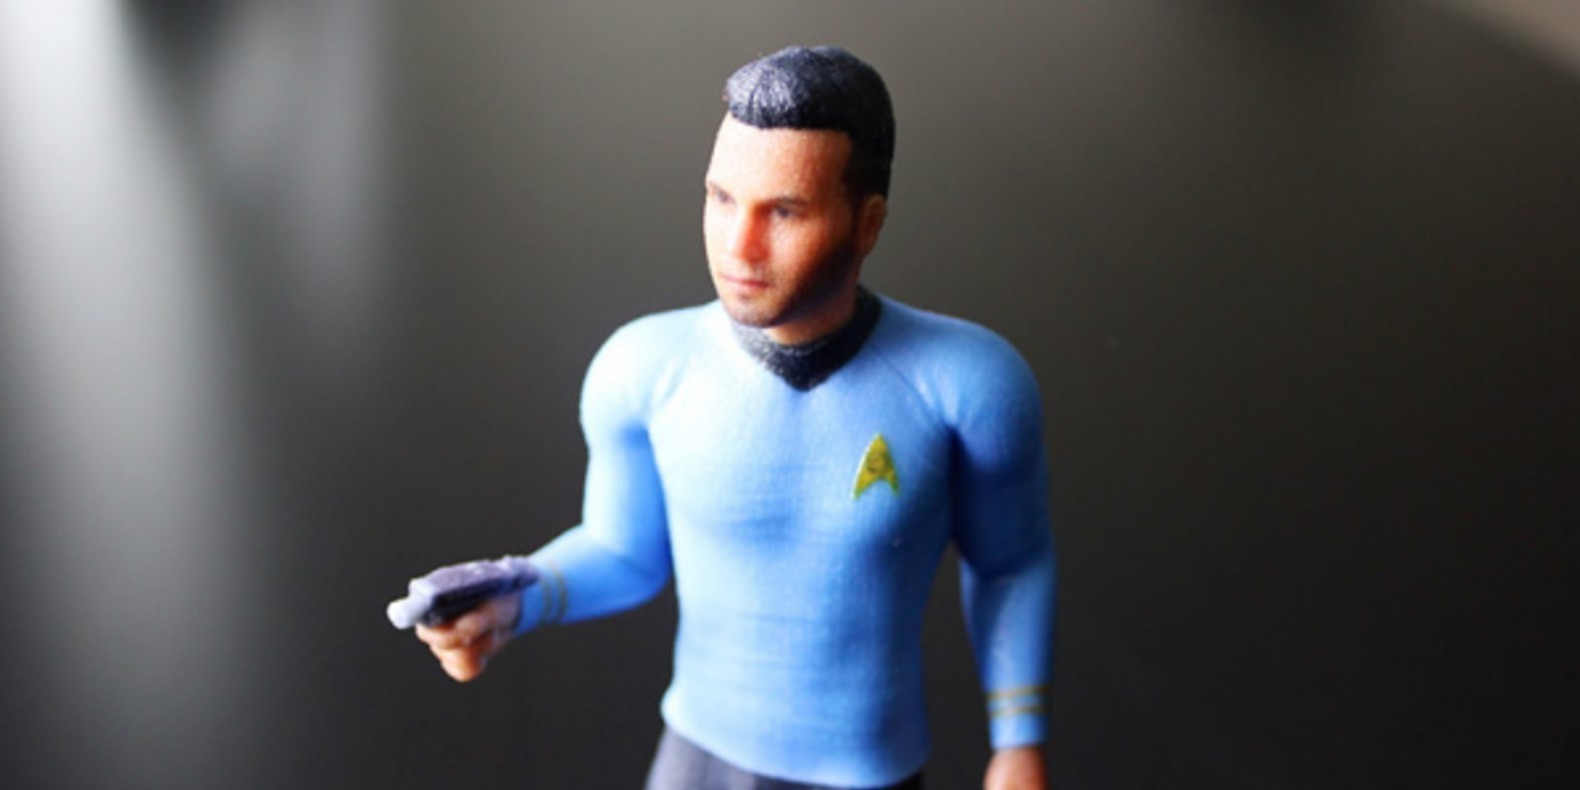 A Star Trek figure with your face